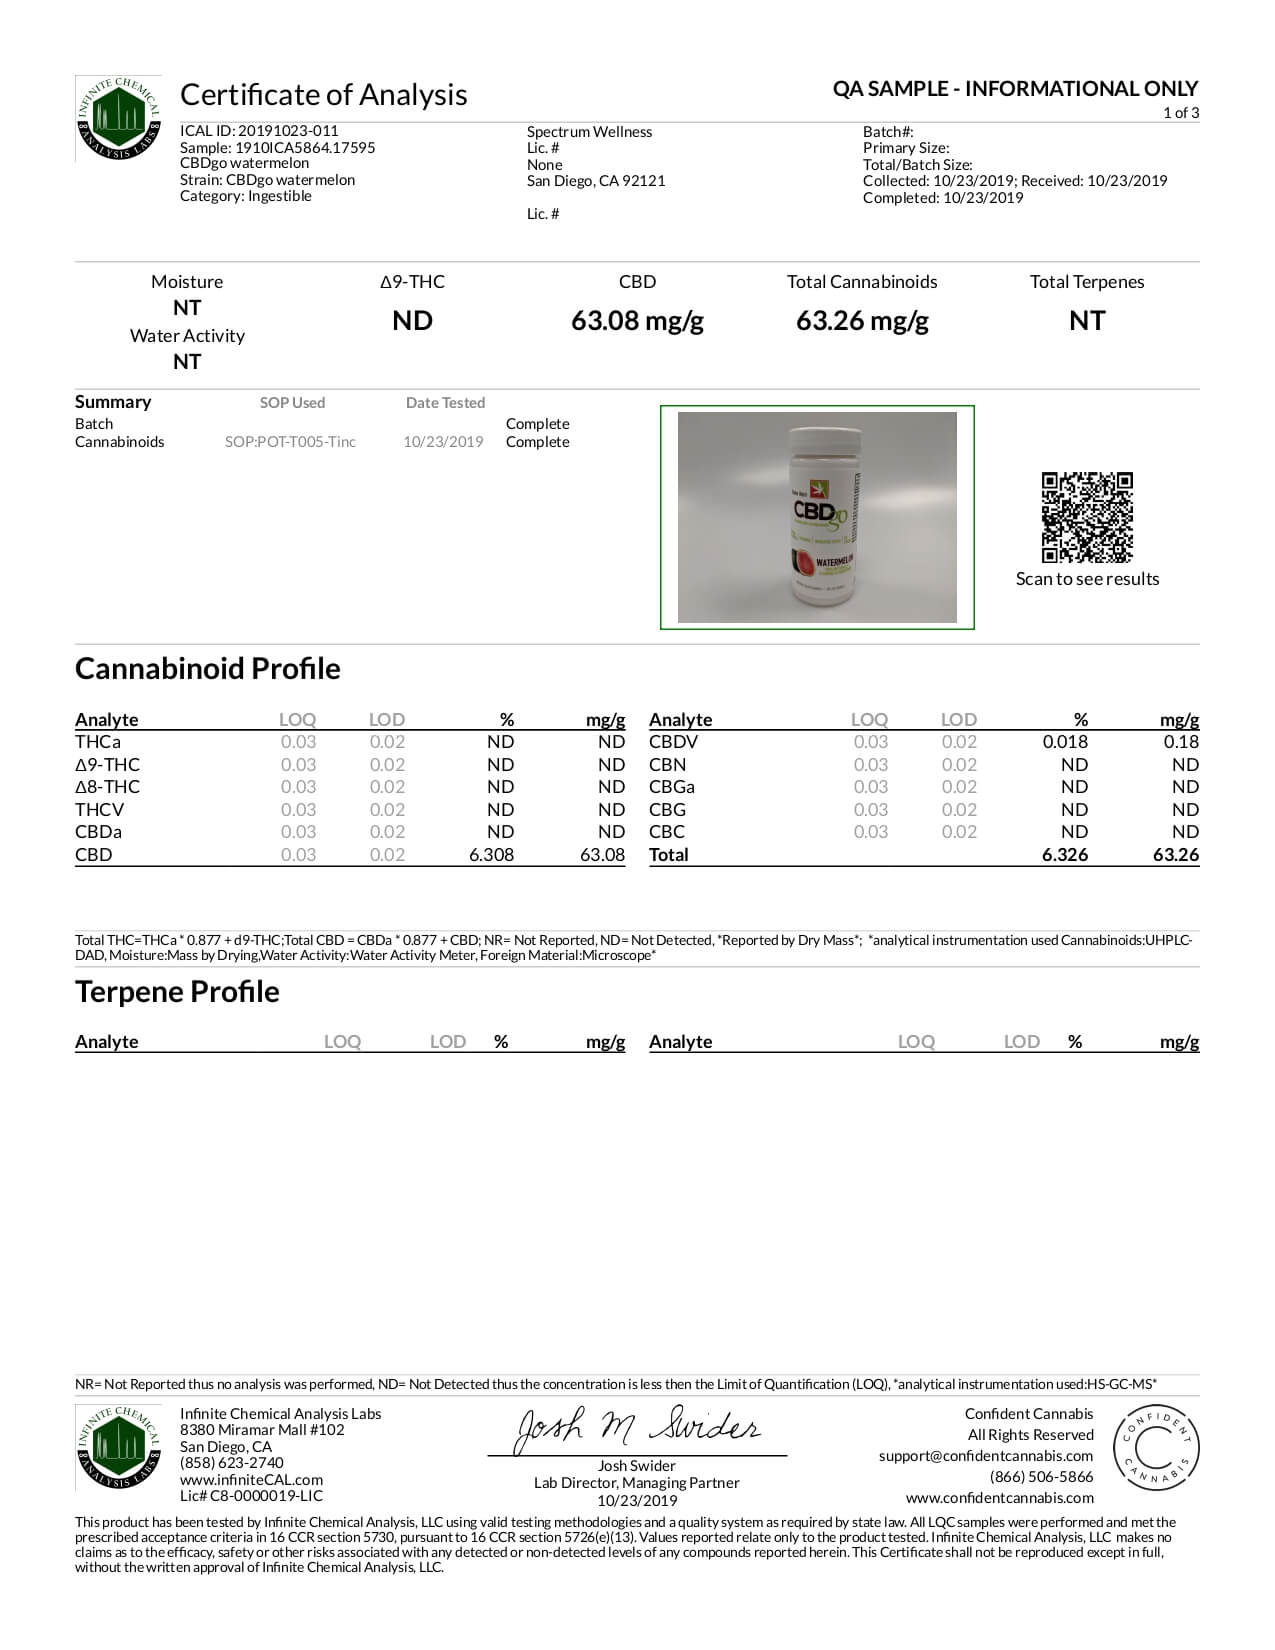 CBDgo CBD Drink Day Time Watermelon Lab Report